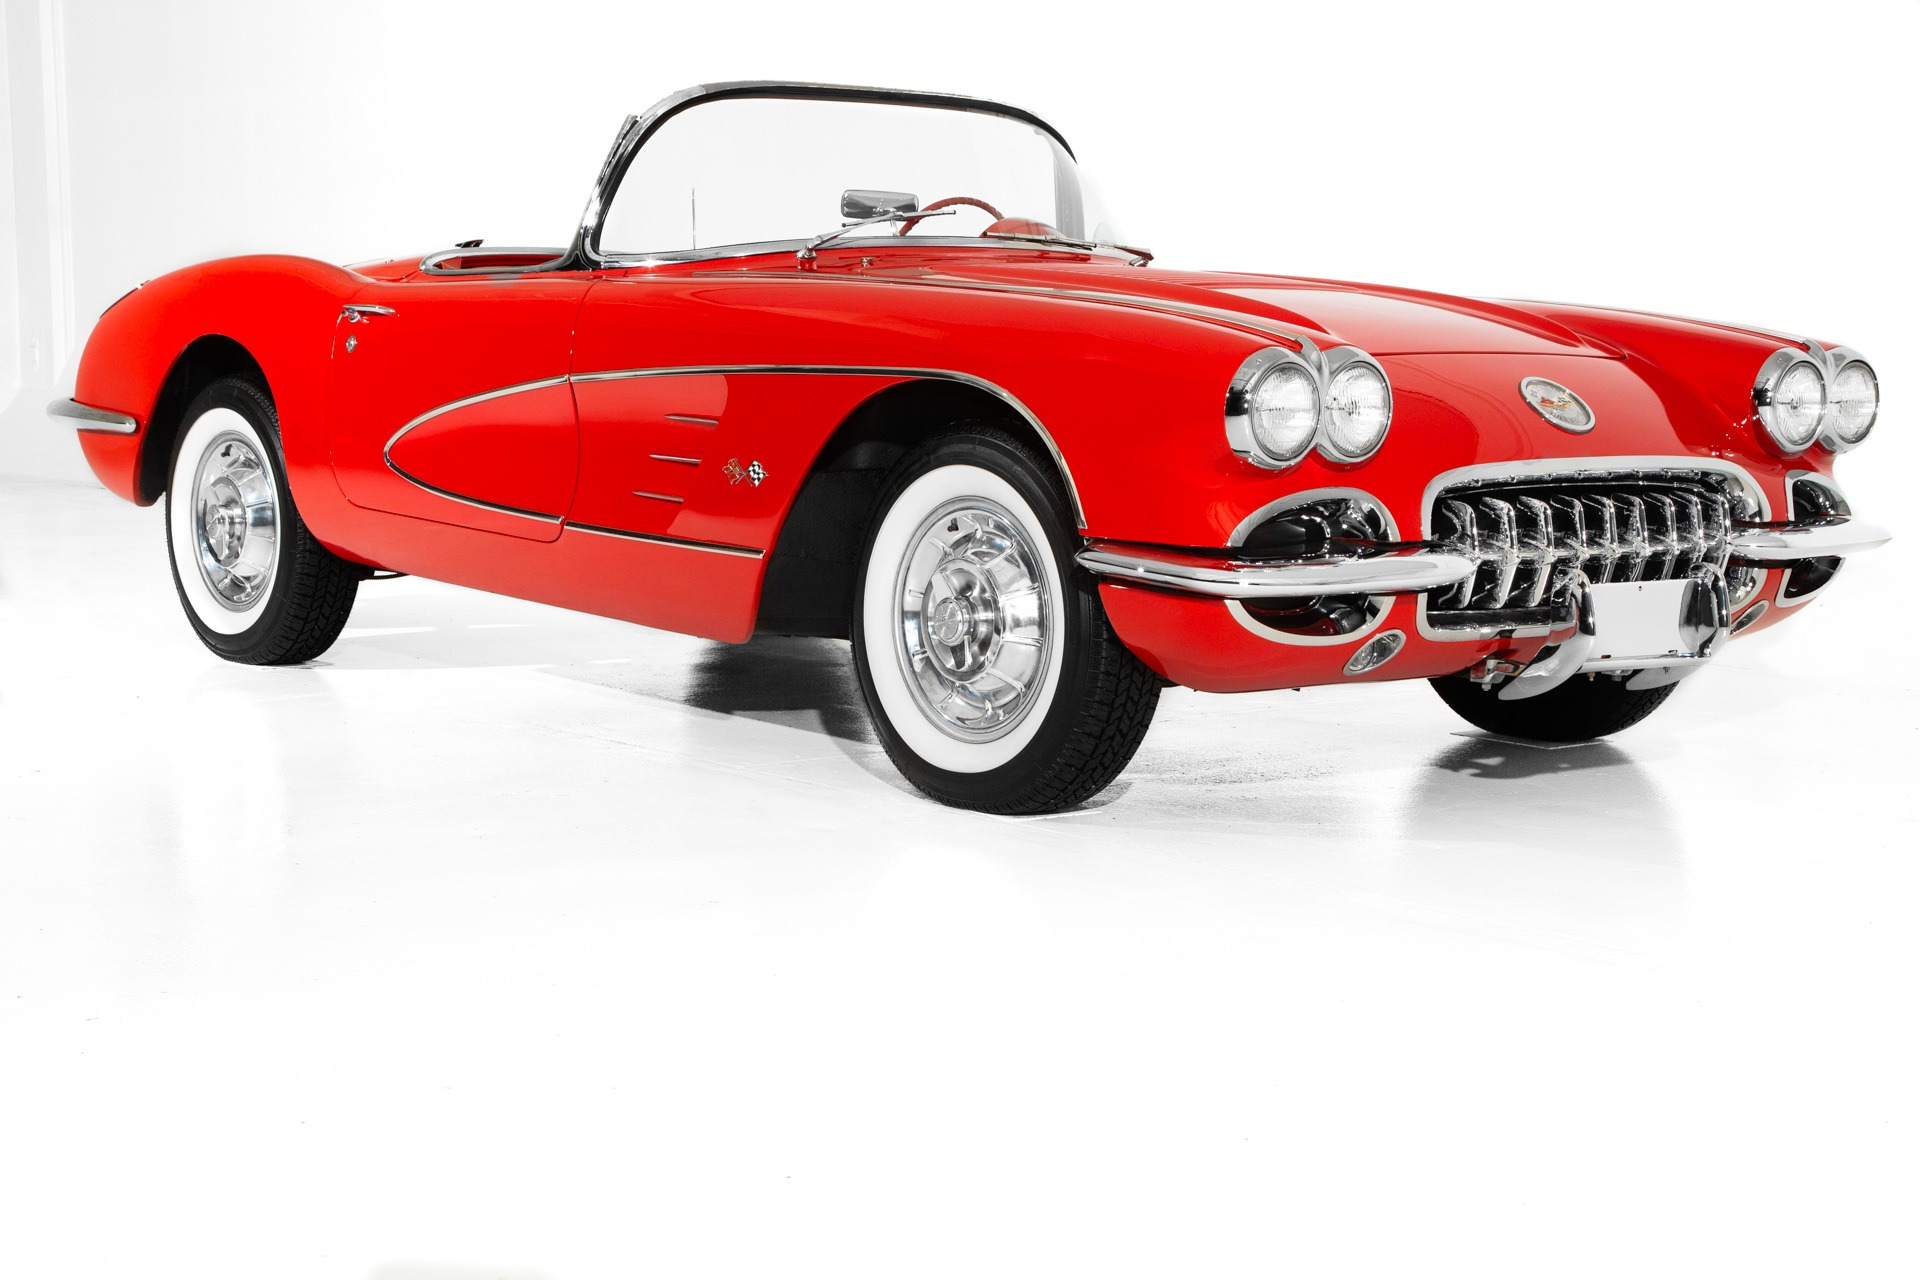 1958 Chevrolet Corvette Convertible Gorgeous!